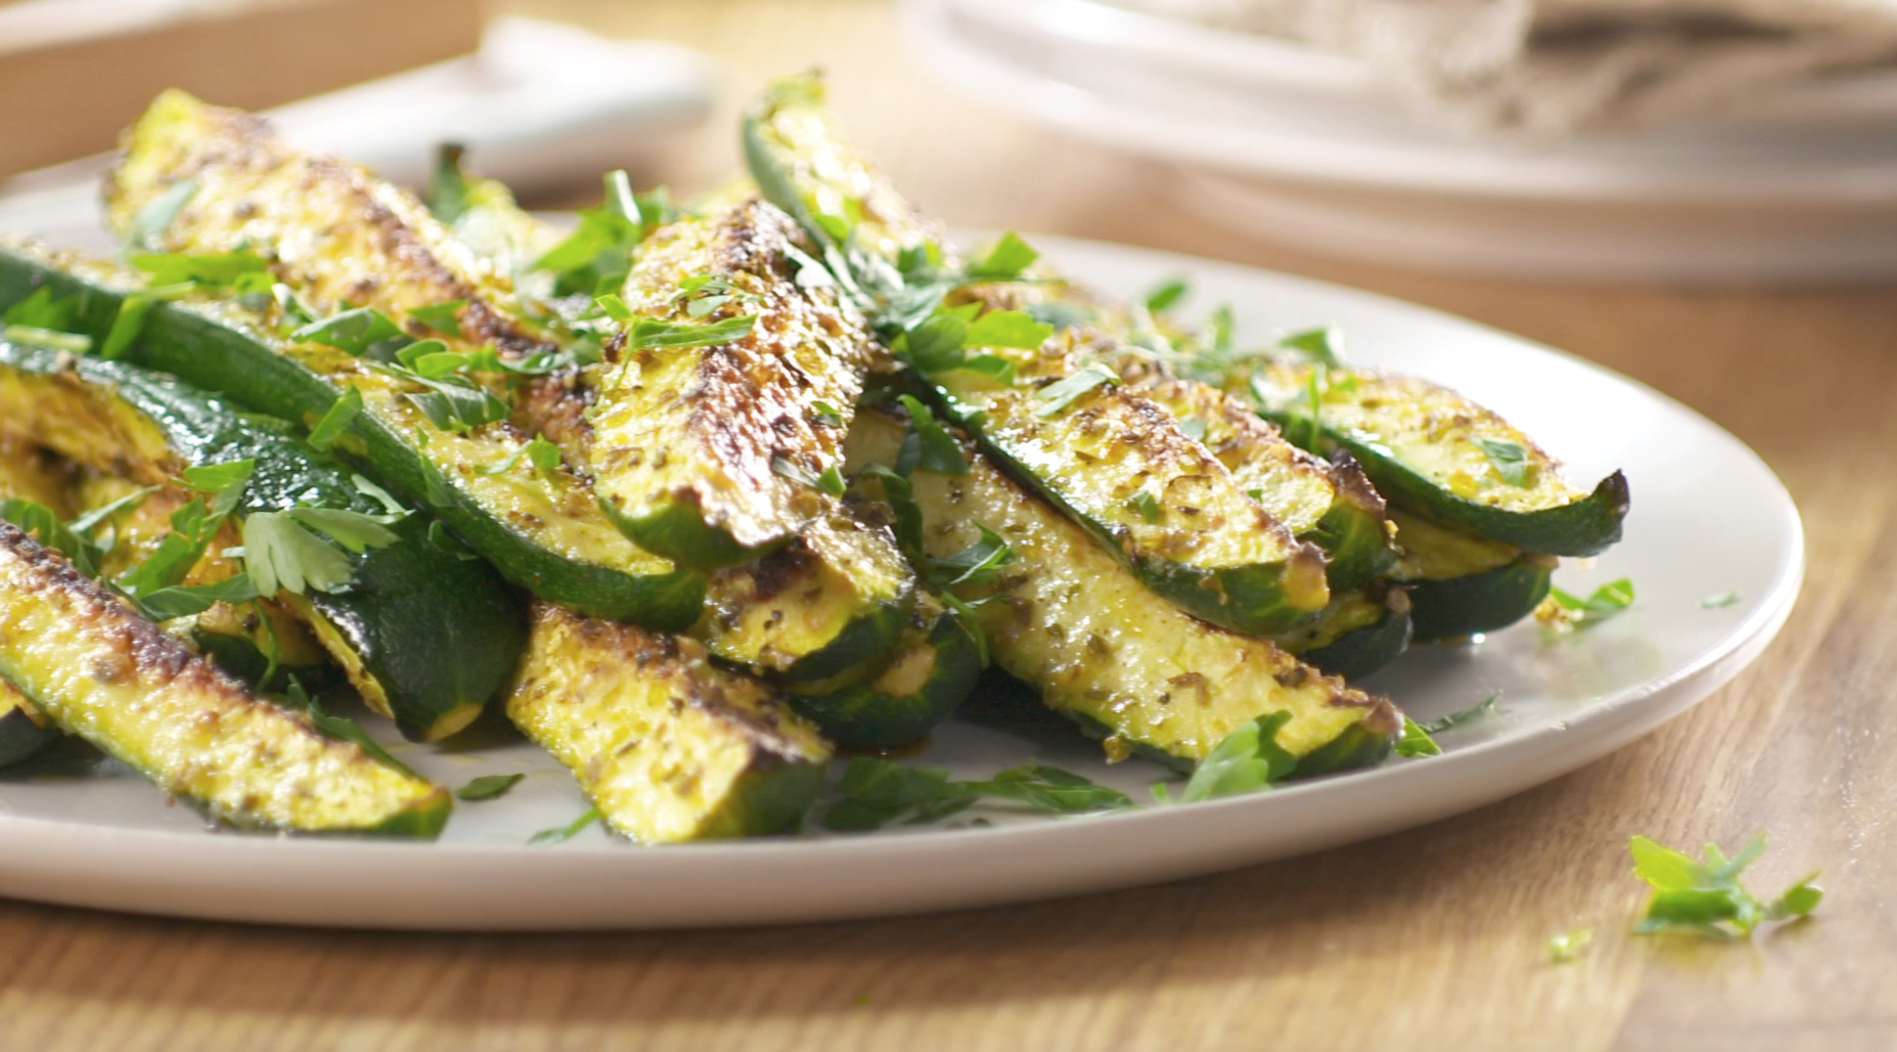 Make this baked parmesan zucchini a weeknight dinner staple